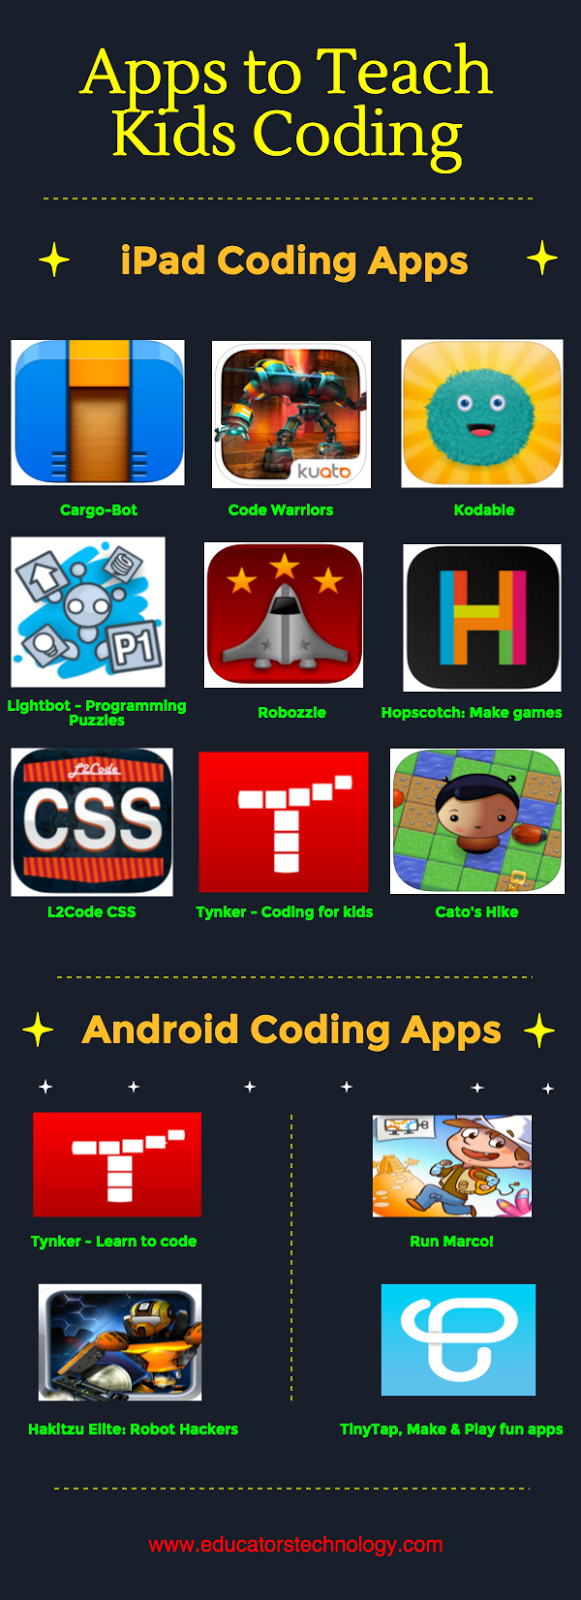 UCET Apps to Teach Kids Coding - UCET